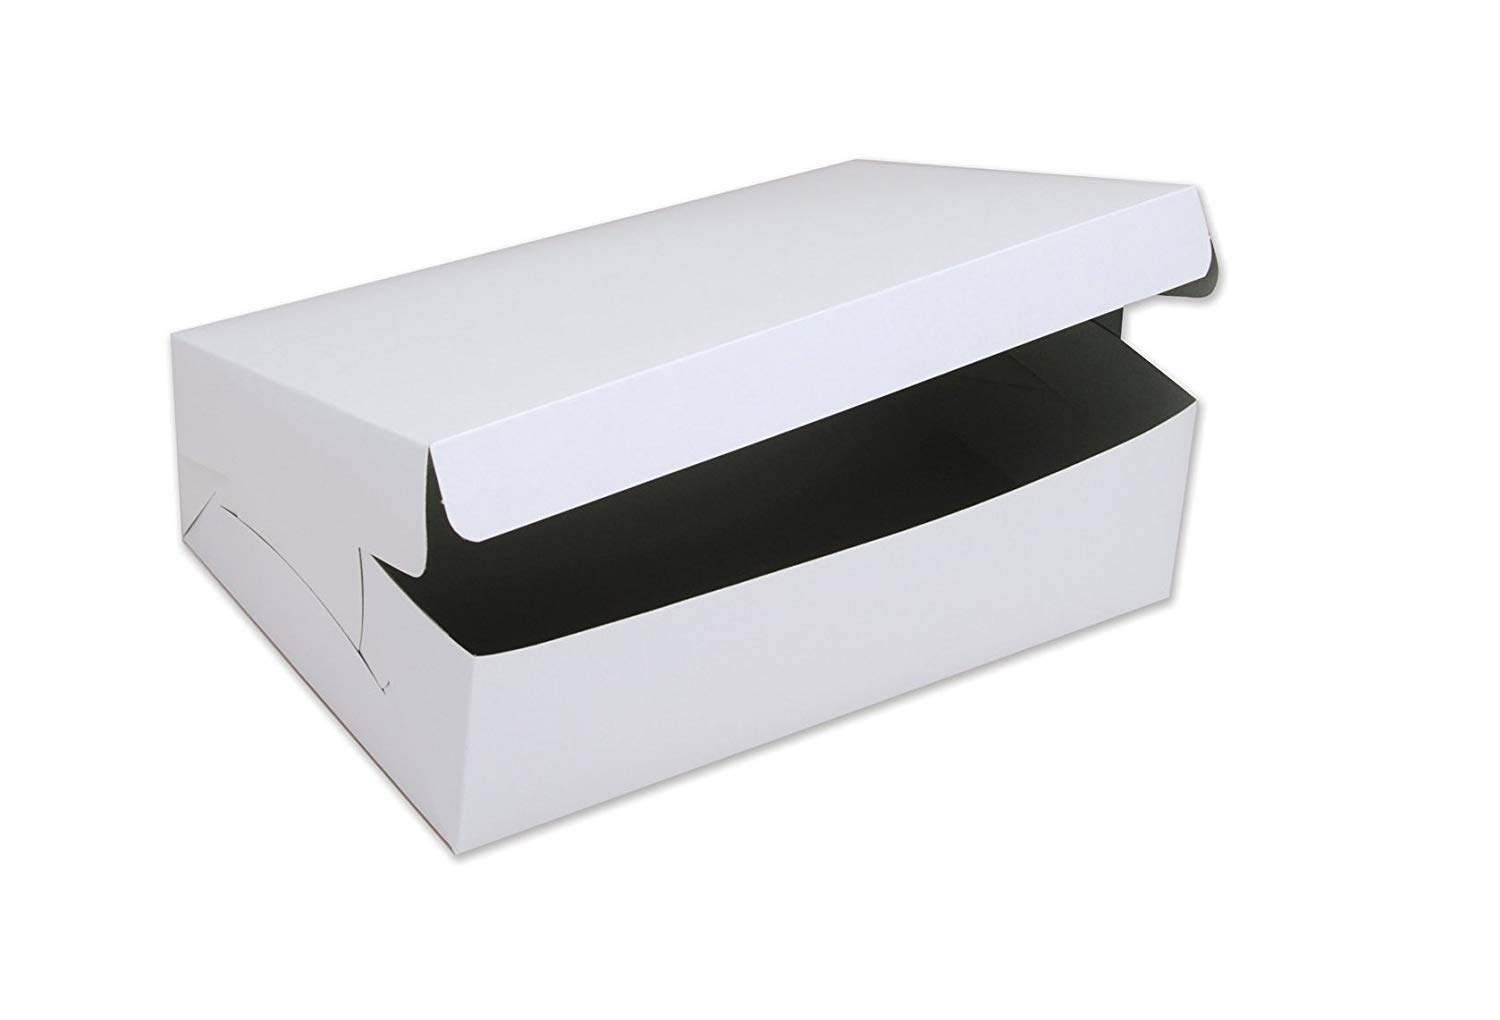 Cake Boxes 19 x 14 x 4 inch (Pack of 10)